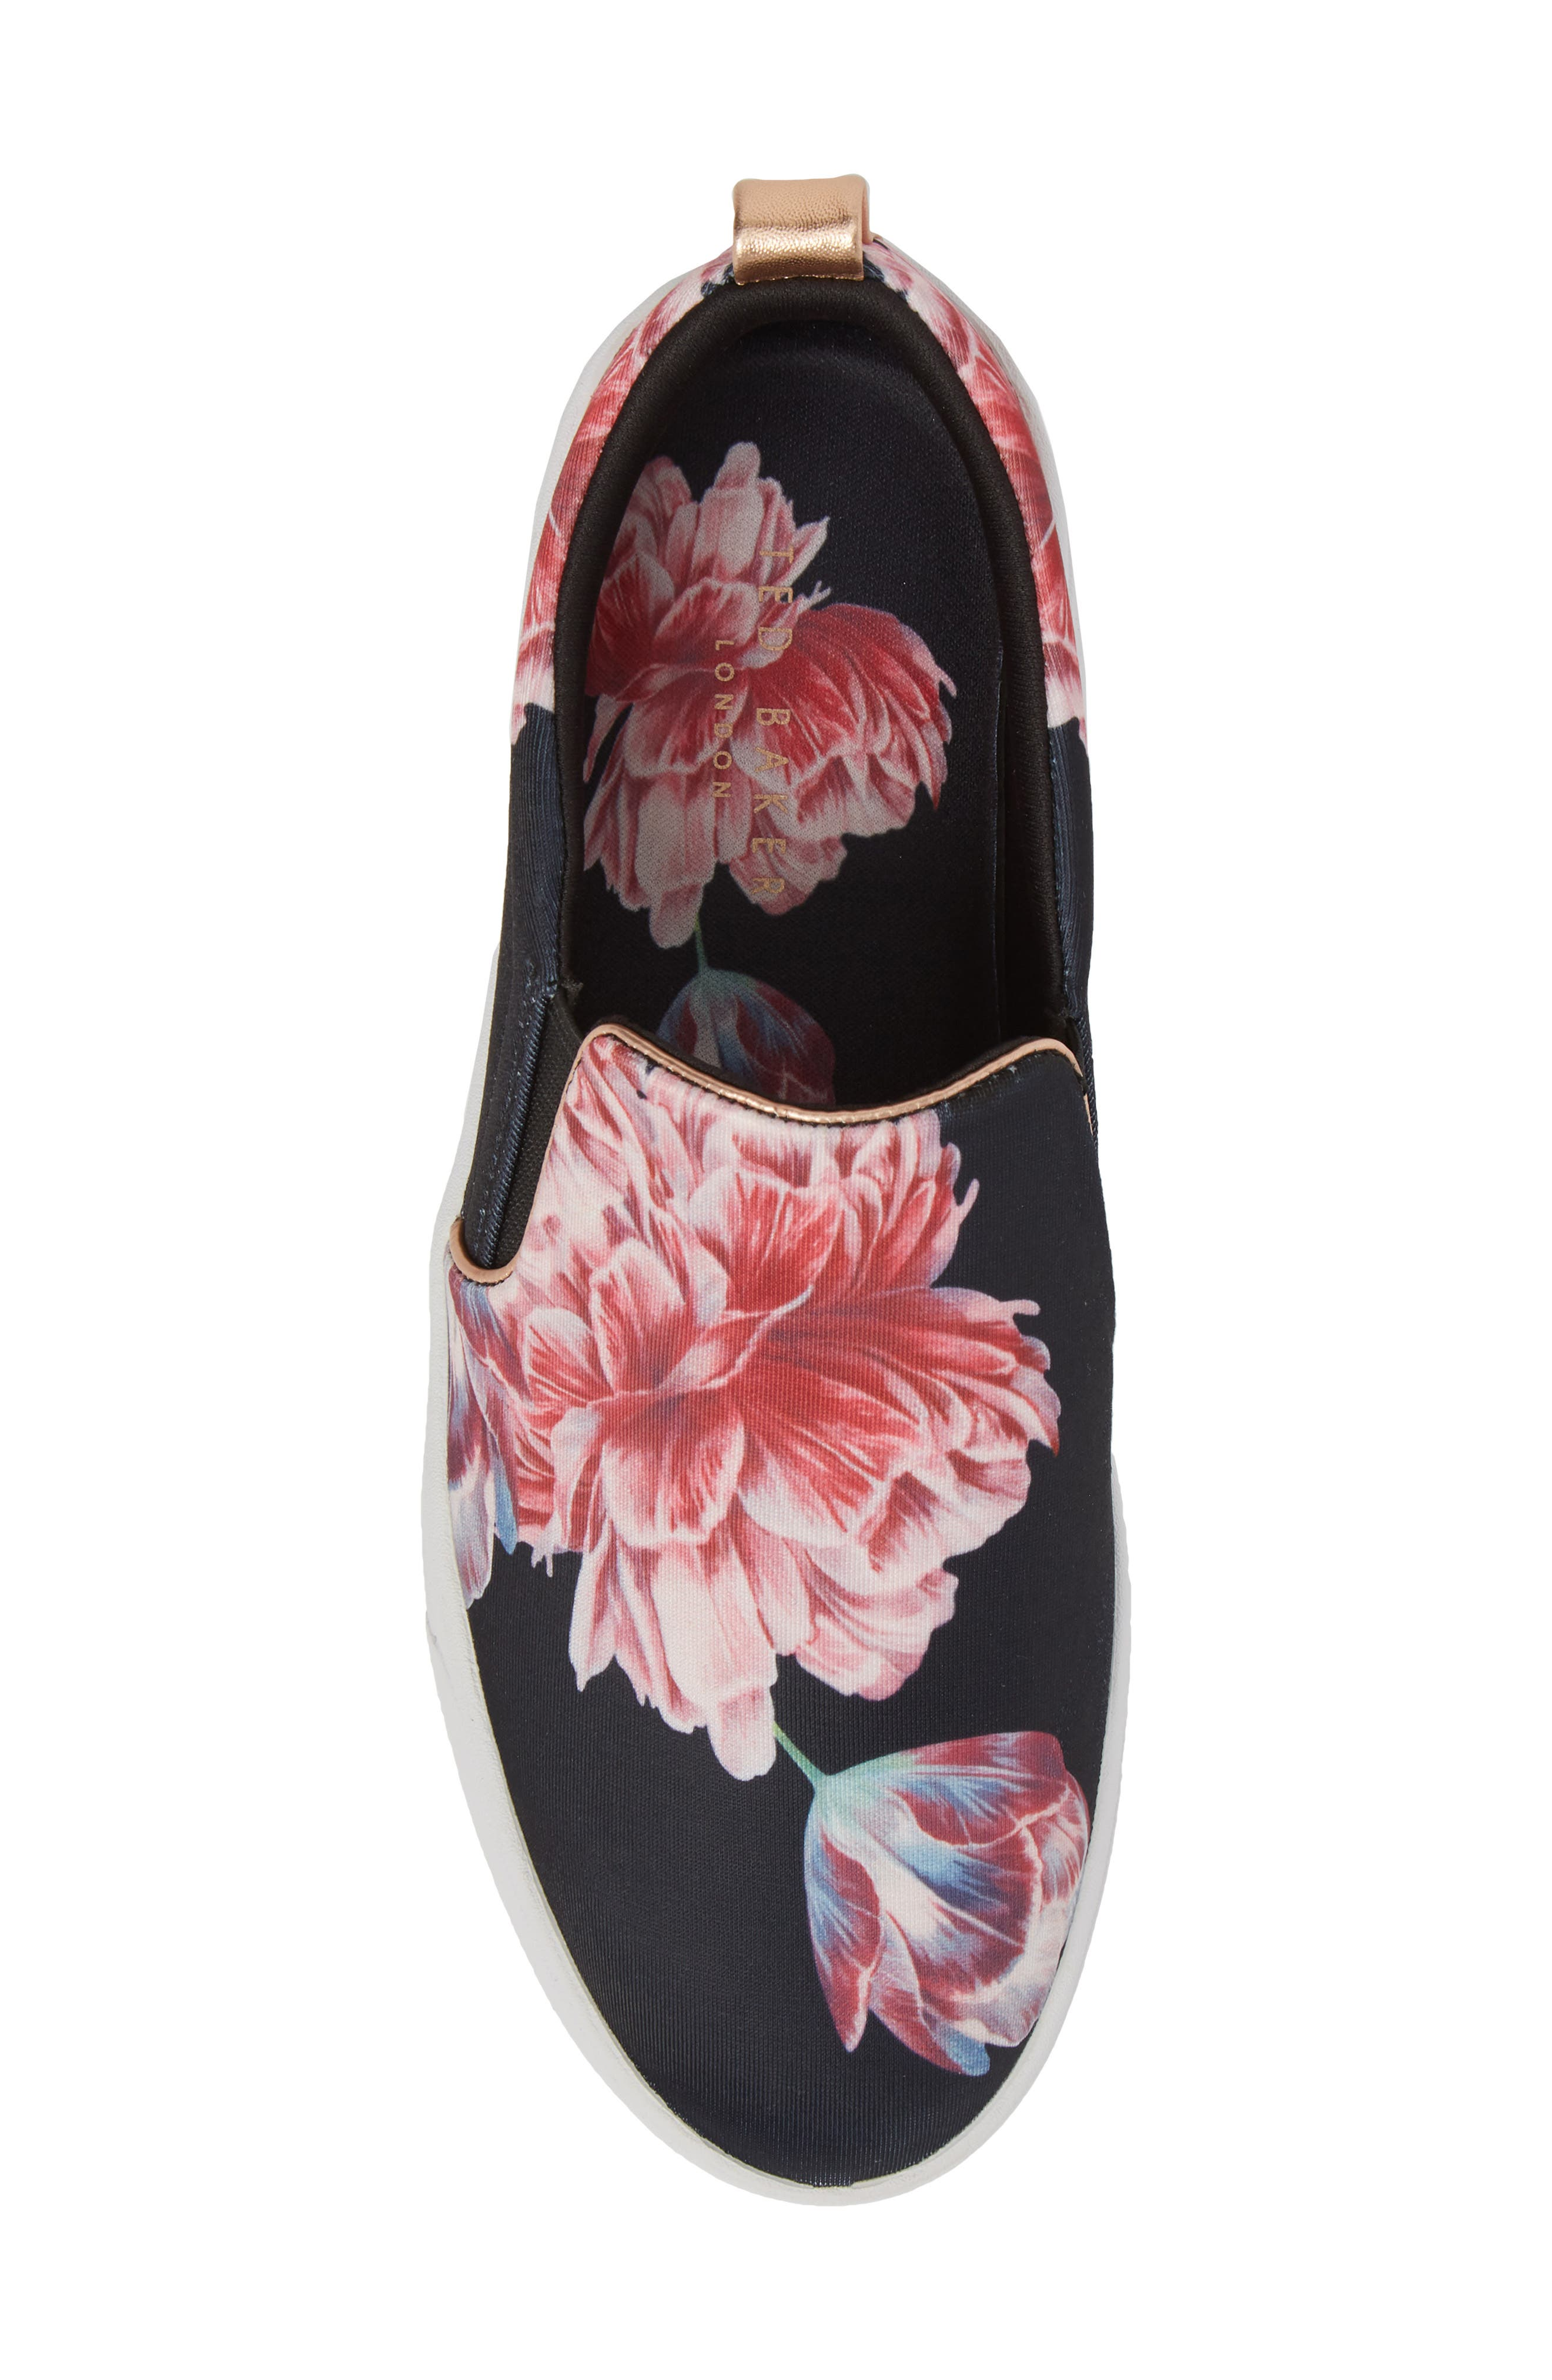 Tancey Slip-On Sneaker,                             Alternate thumbnail 5, color,                             BLACK TRANQUILITY FABRIC